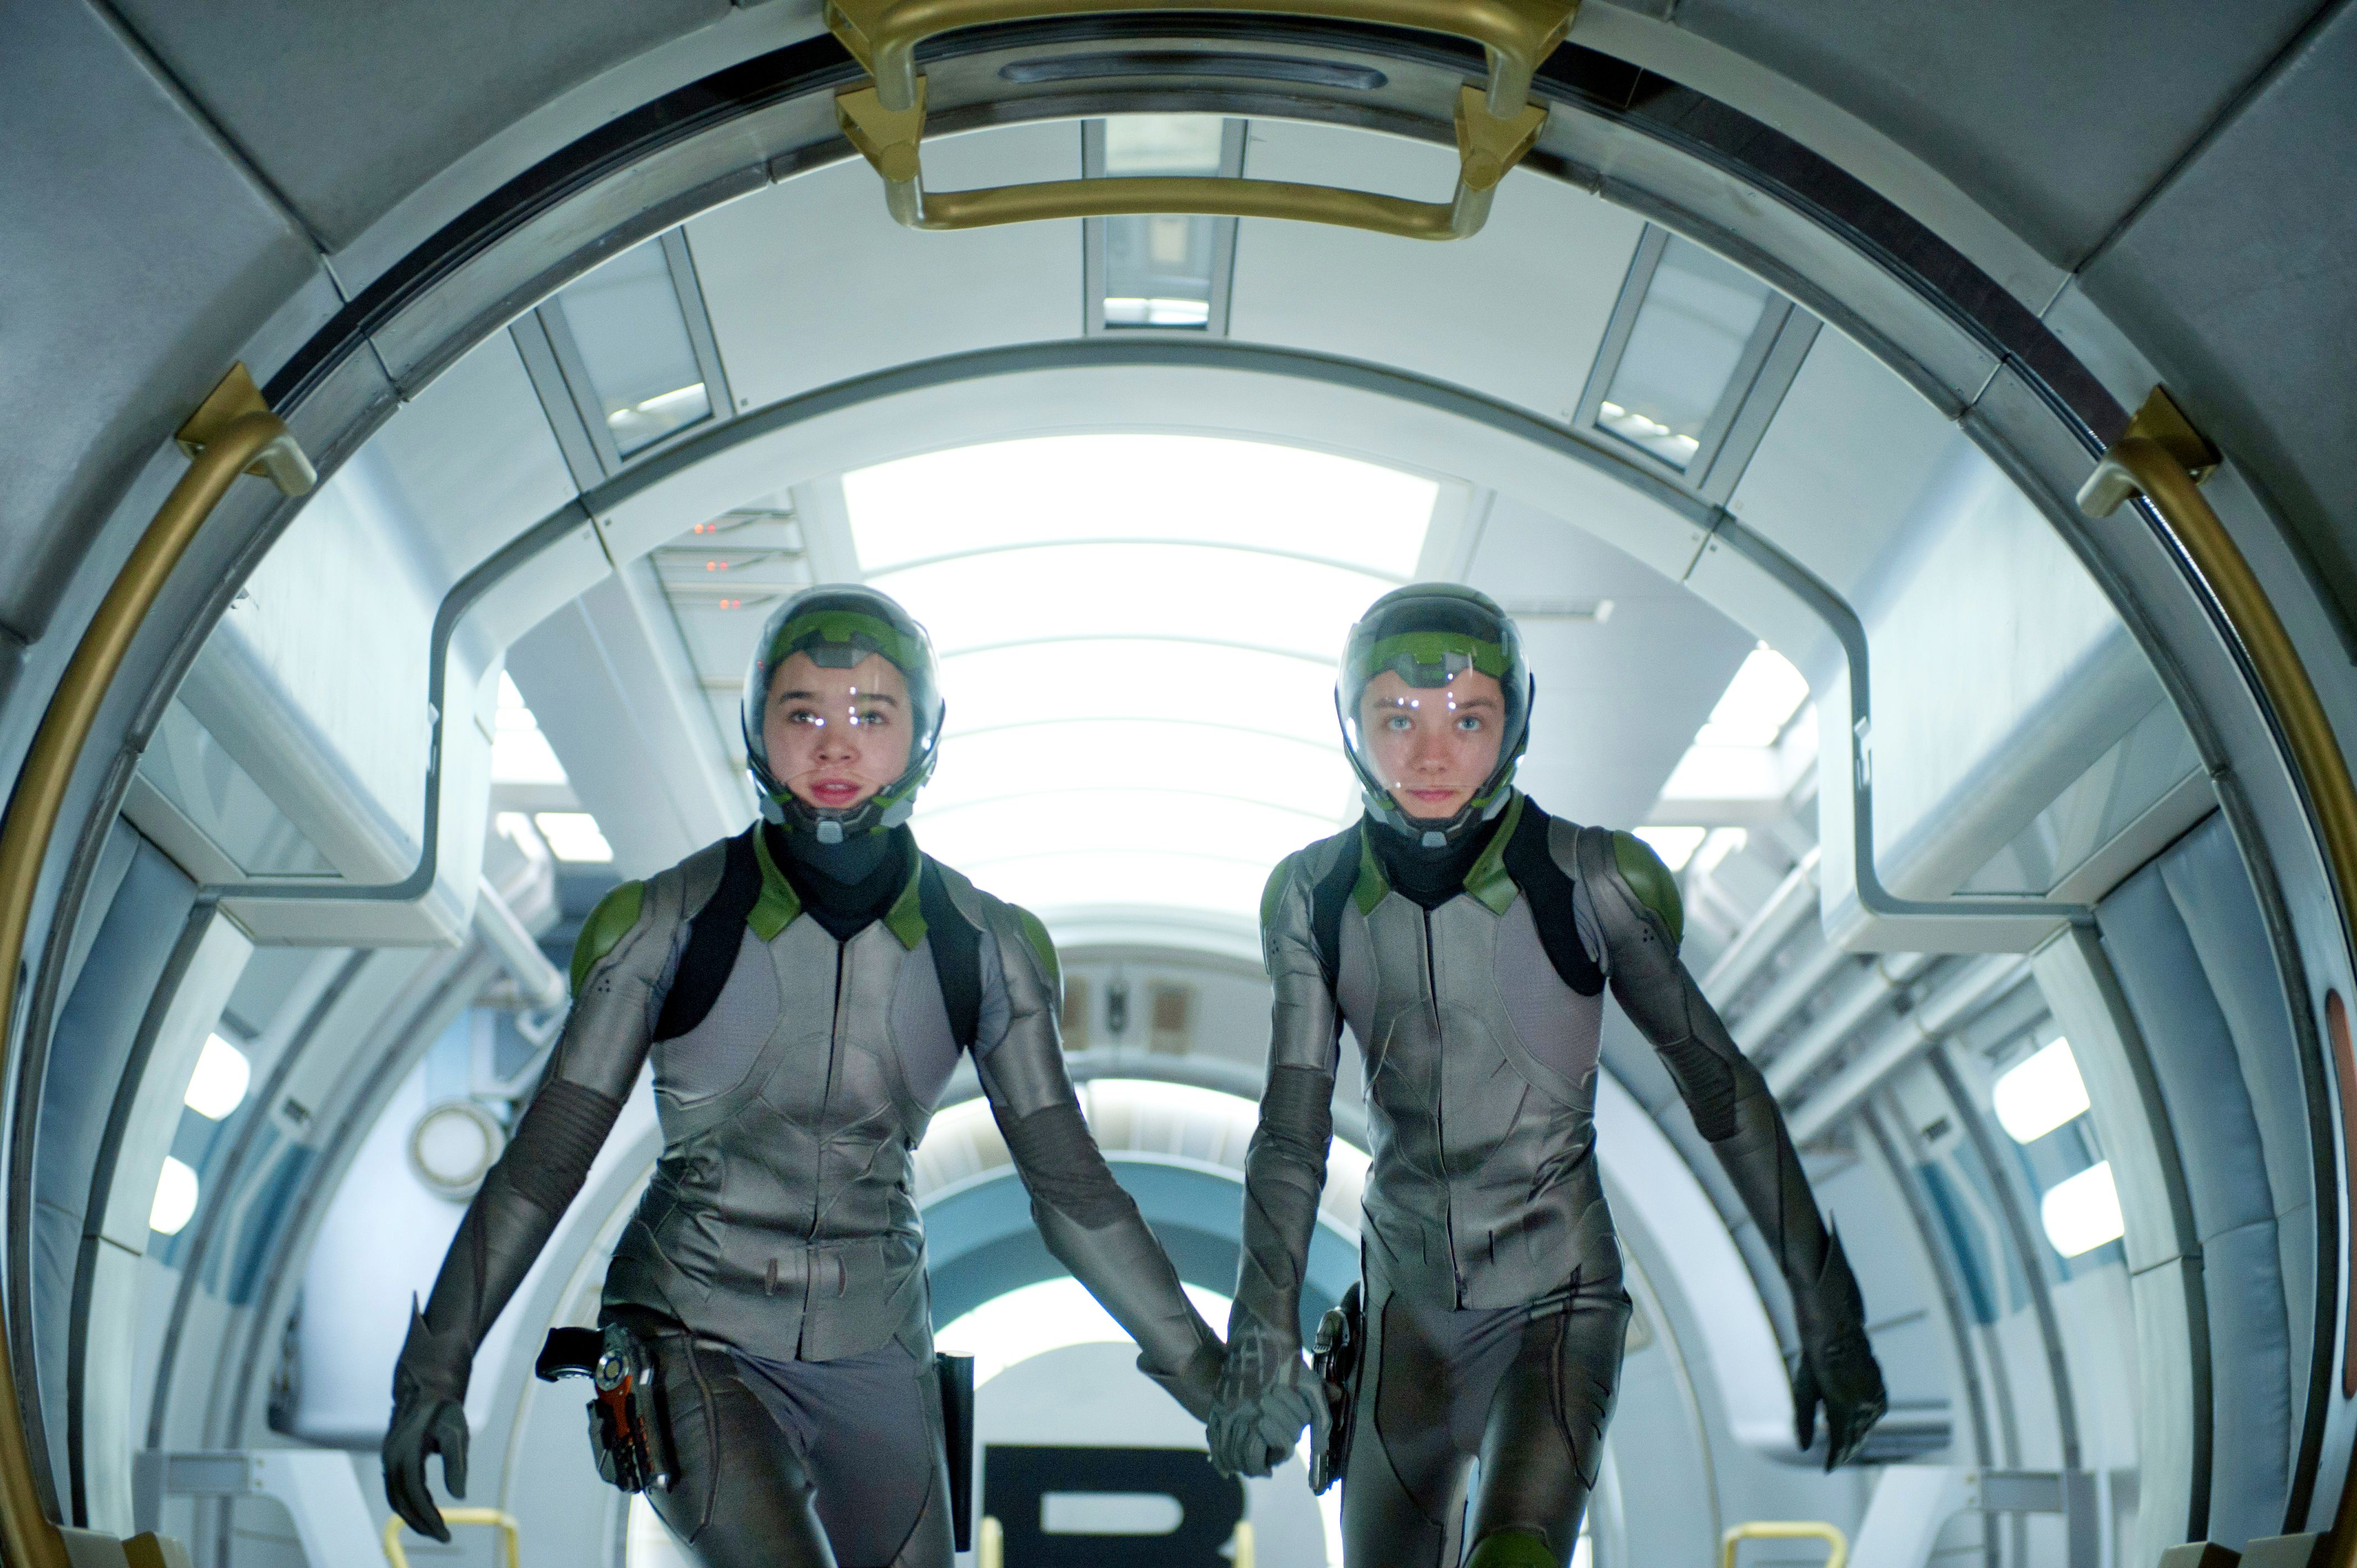 An image from Ender's Game